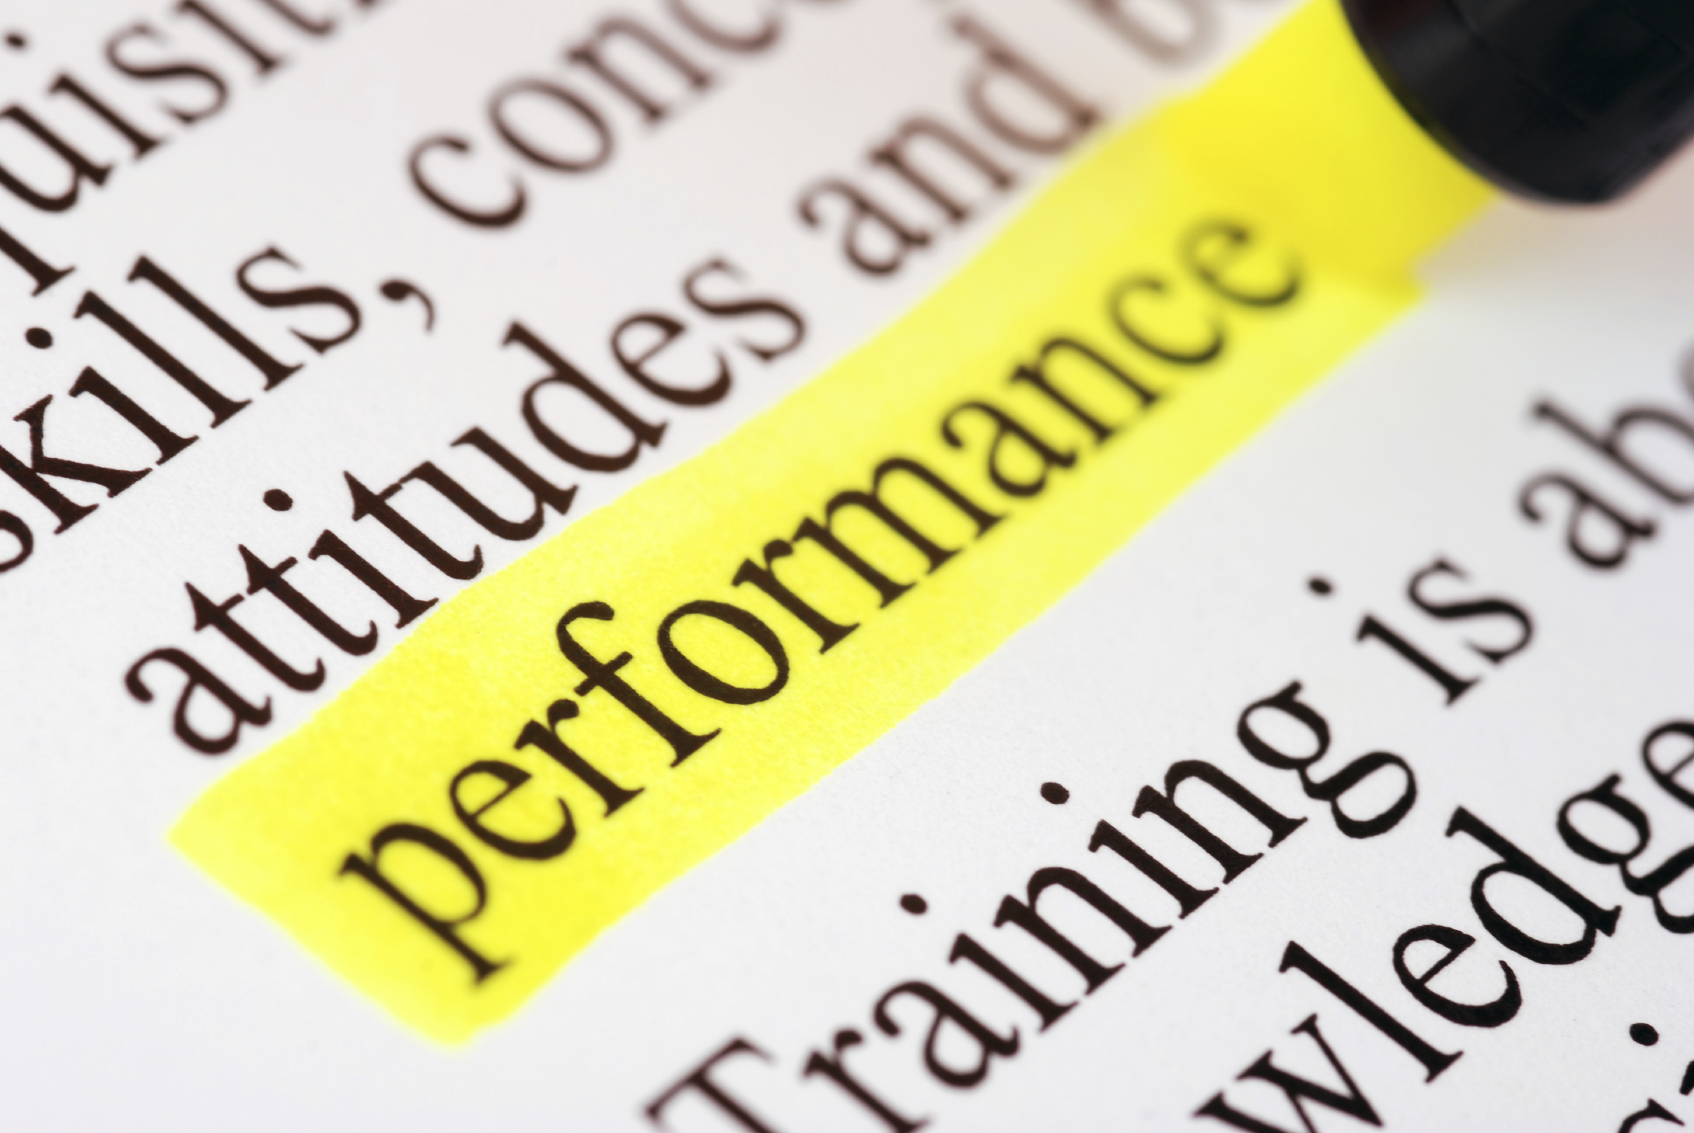 The-word-Performance-in-a-book